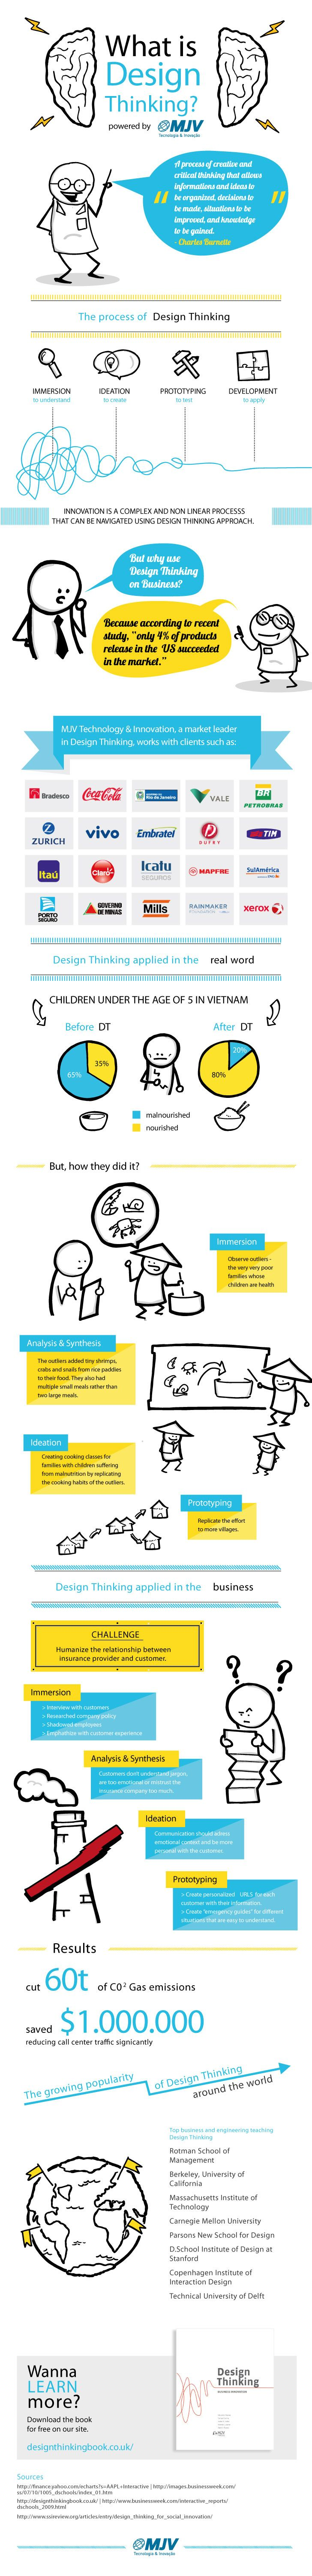 #INFOgraphic > Design Thinking 101: Design Thinking is a process that is getting more and more attention in both the business world and the real world as it spurs innovation and solves complex problems. See how it works.  > http://infographicsmania.com/design-thinking-101/